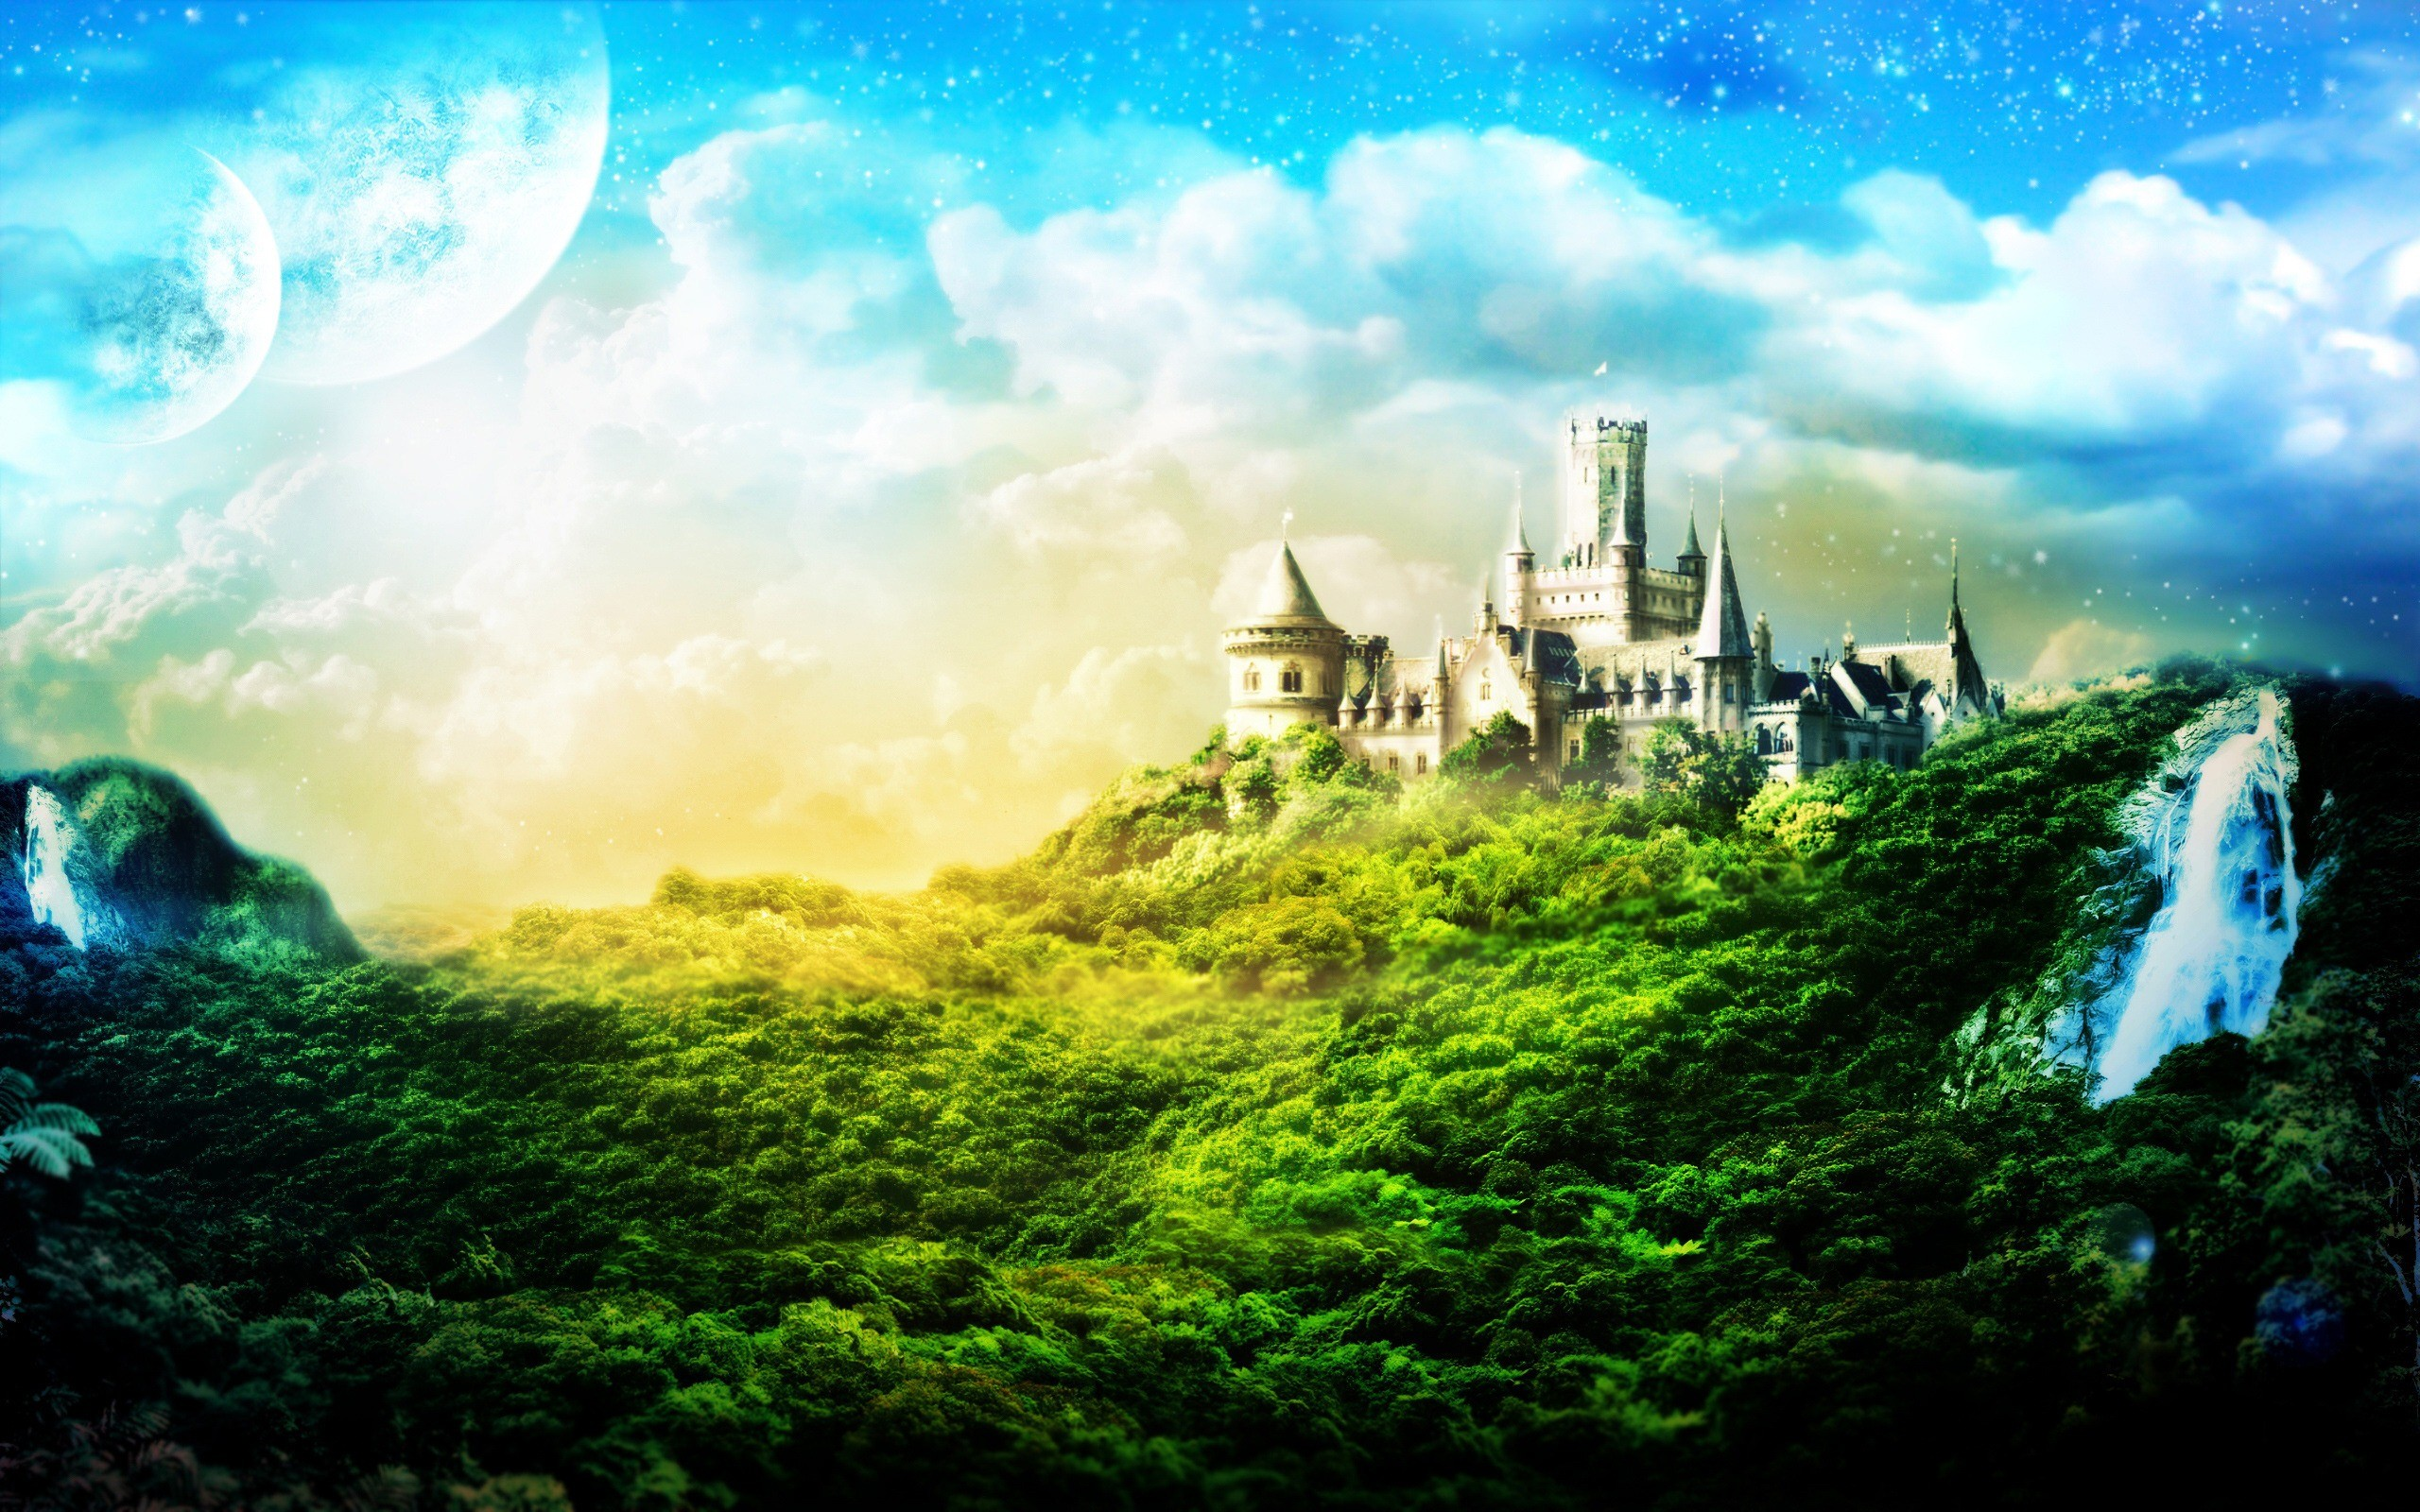 fairytale background (55+ images)